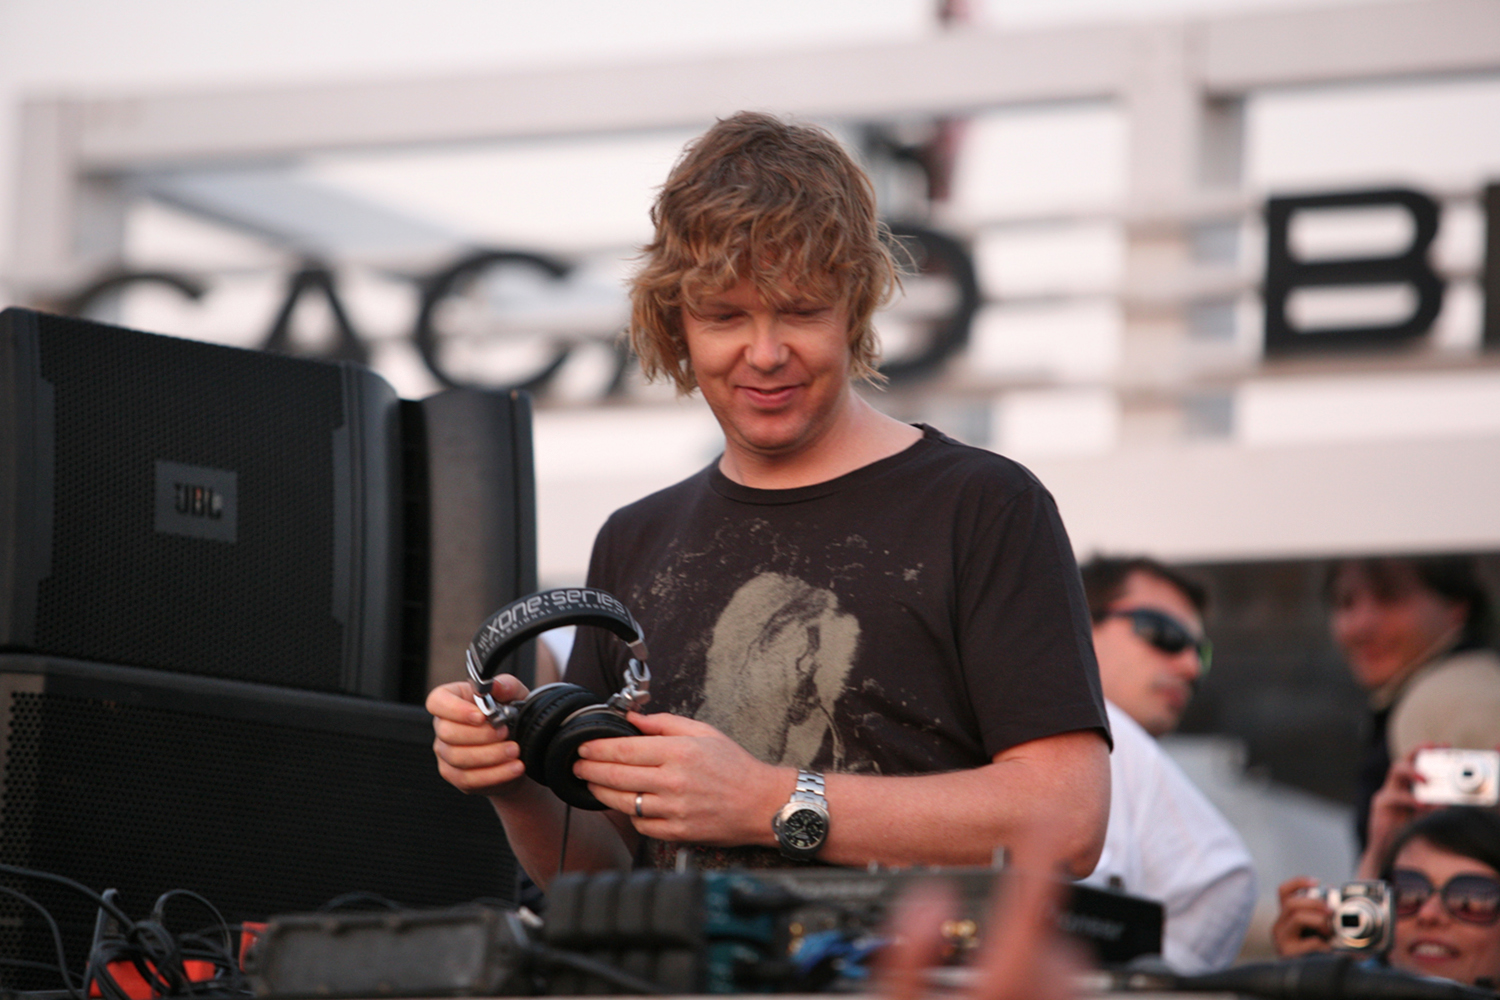 http://damabeats.files.wordpress.com/2010/10/john-digweed_becksperience-2009_sunny-beach.jpg